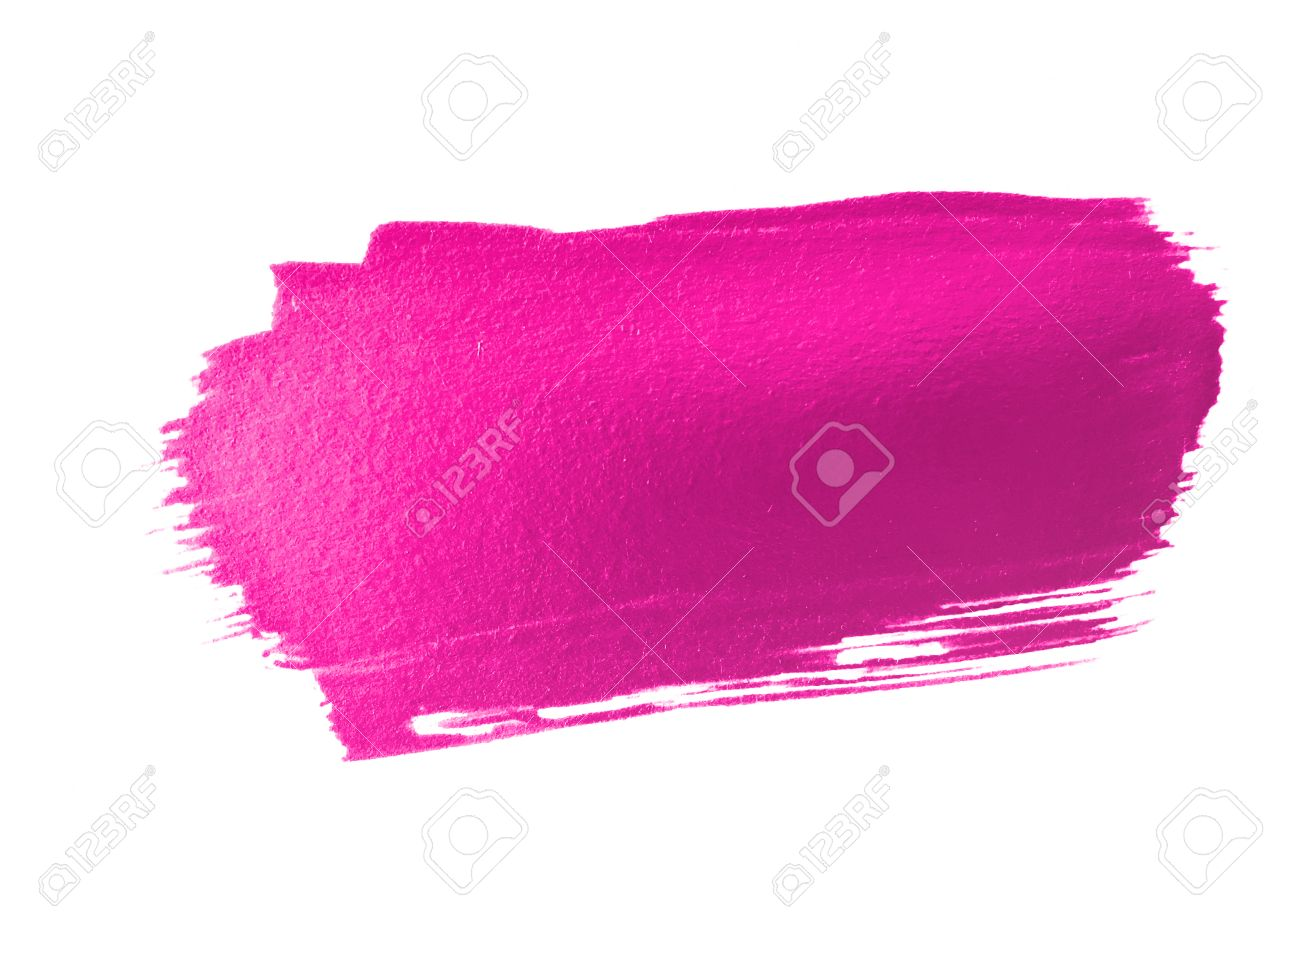 Bright Pink Paint Hot Pink Paint Smear Stroke Stain On White Background Stock Photo